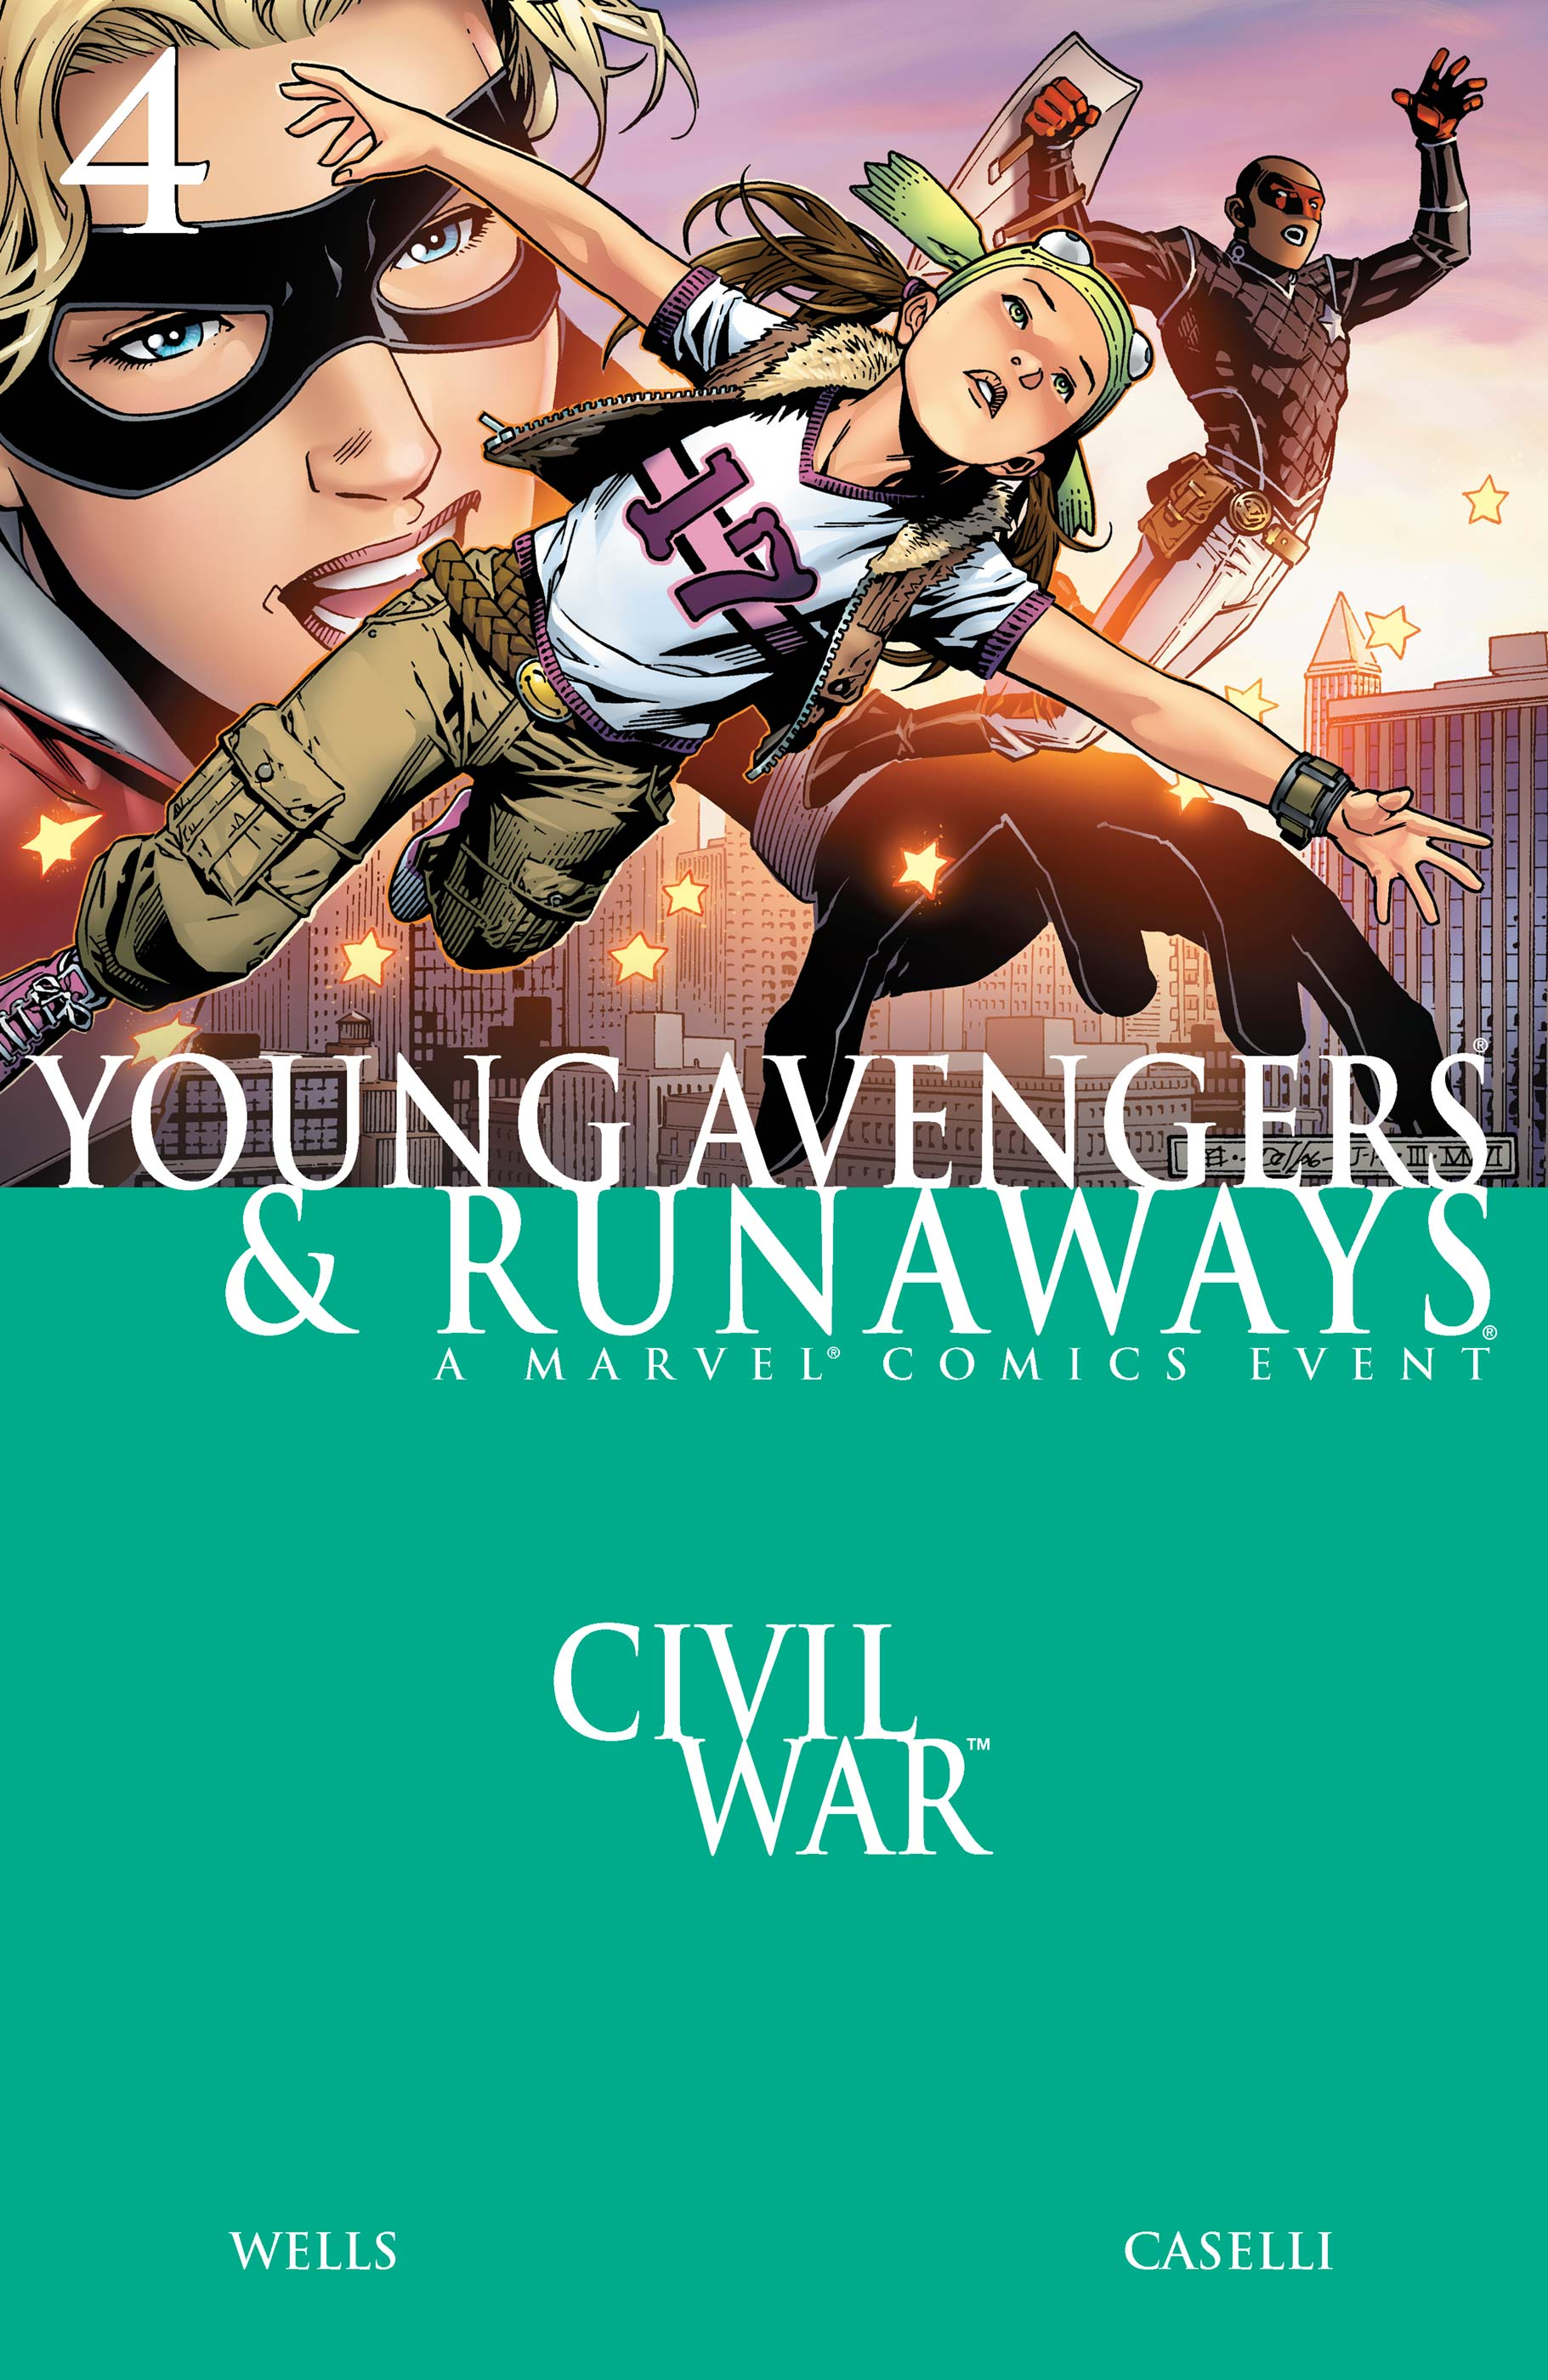 Civil War: Young Avengers & Runaways (2006) #4